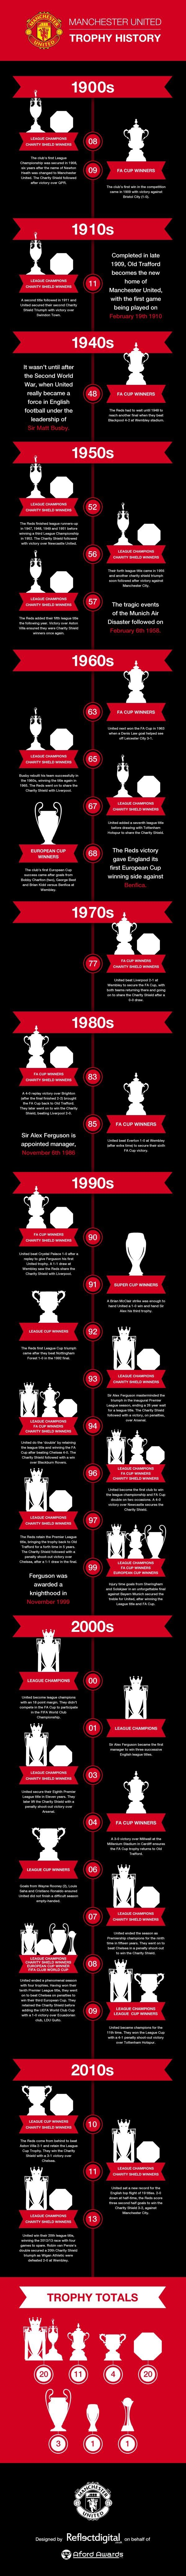 Manchester United, (Trophy History)